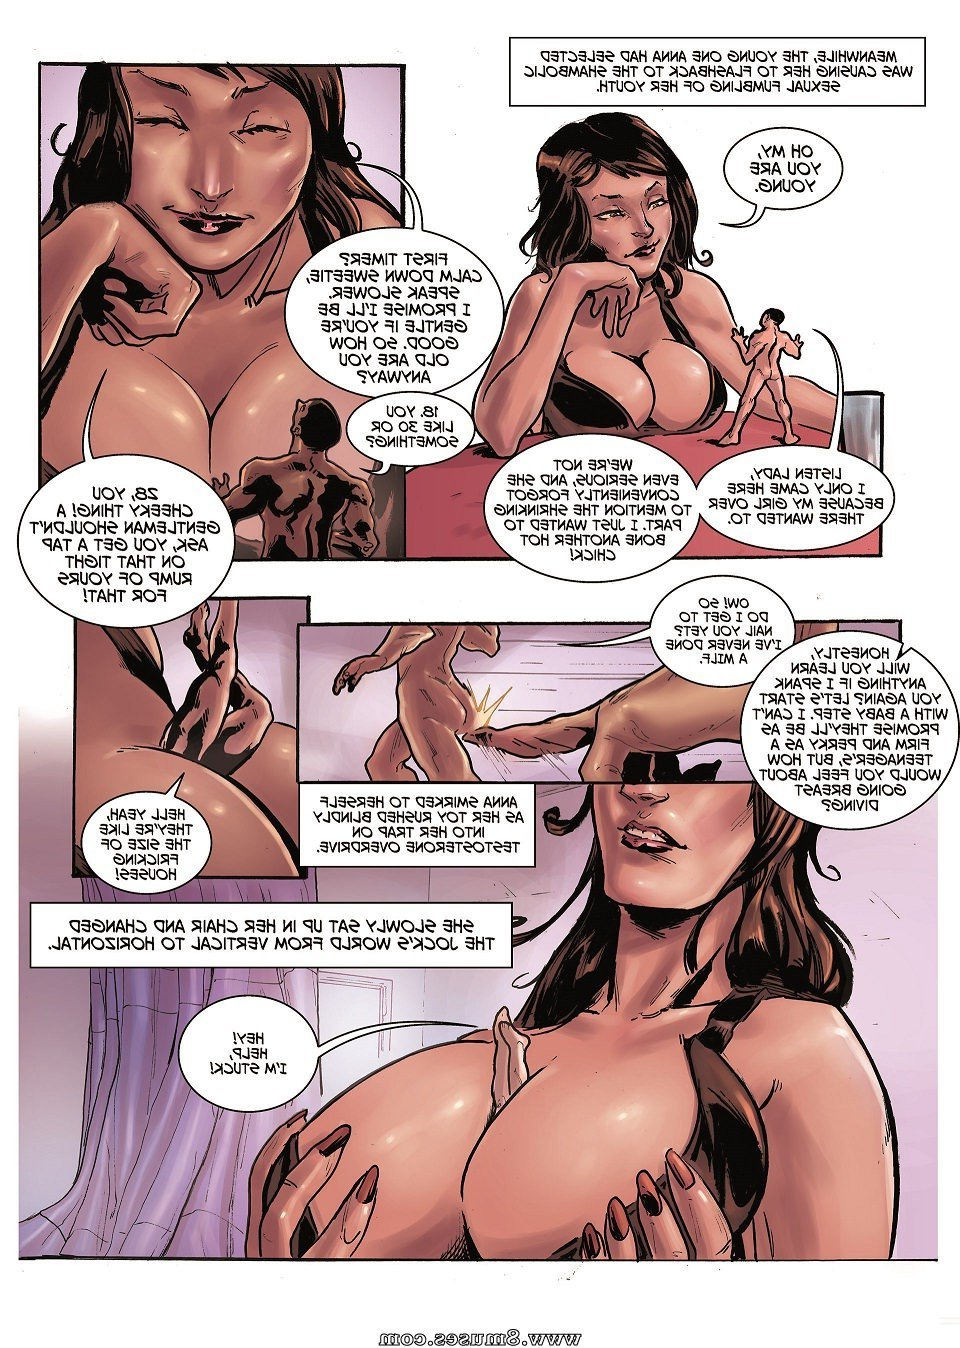 Giantess-Fan-Comics/Size-Swingers/Issue-1 Size_Swingers_-_Issue_1_8.jpg